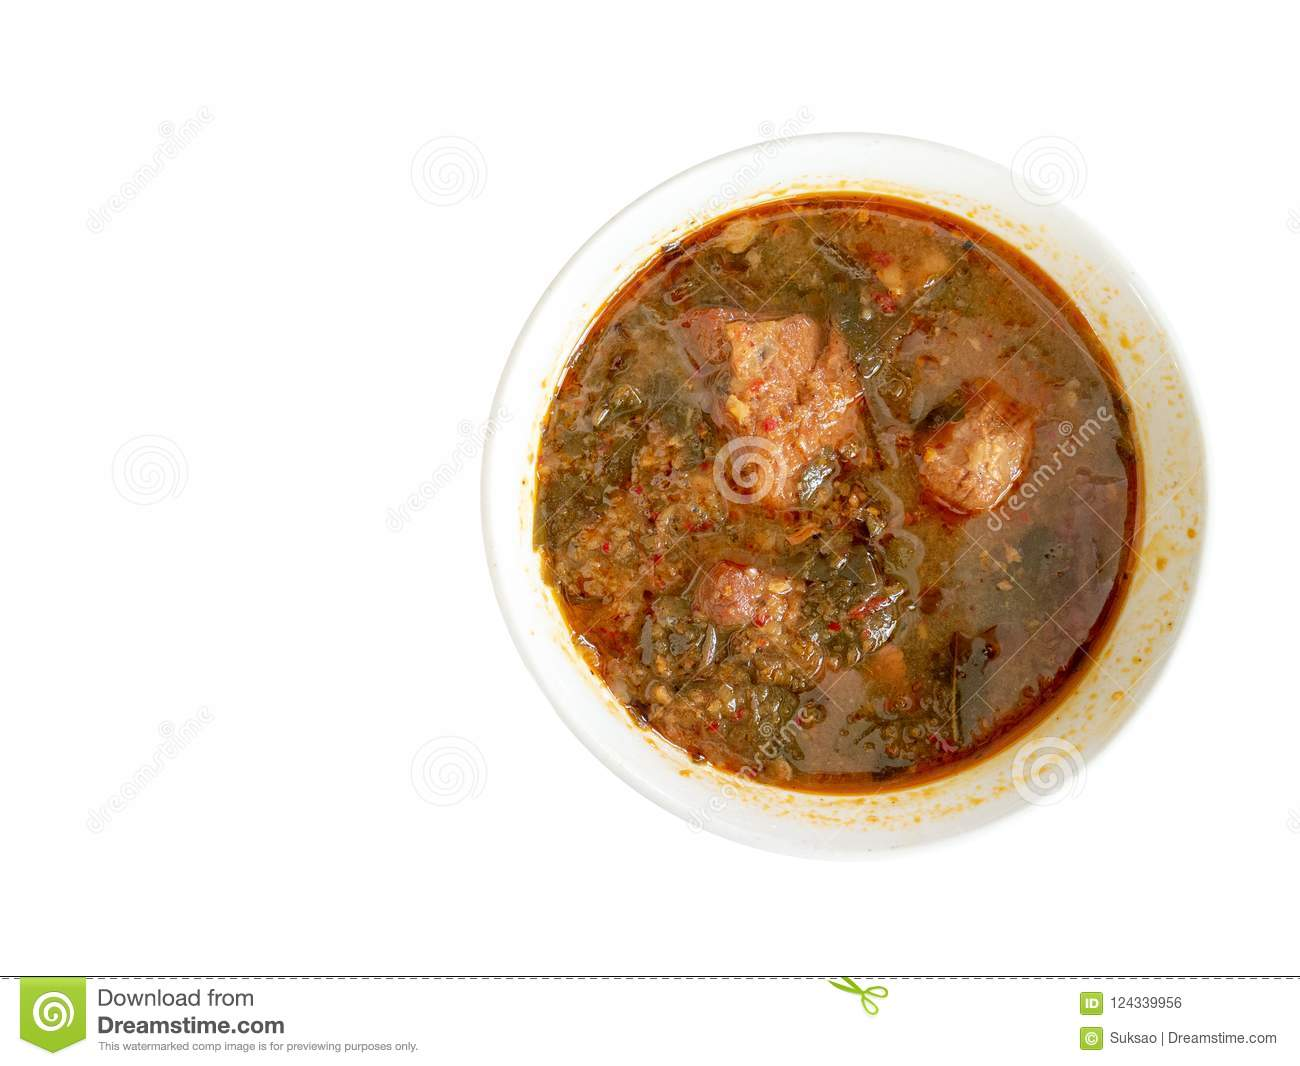 Curry spice pork with garcinia cowa leaves.